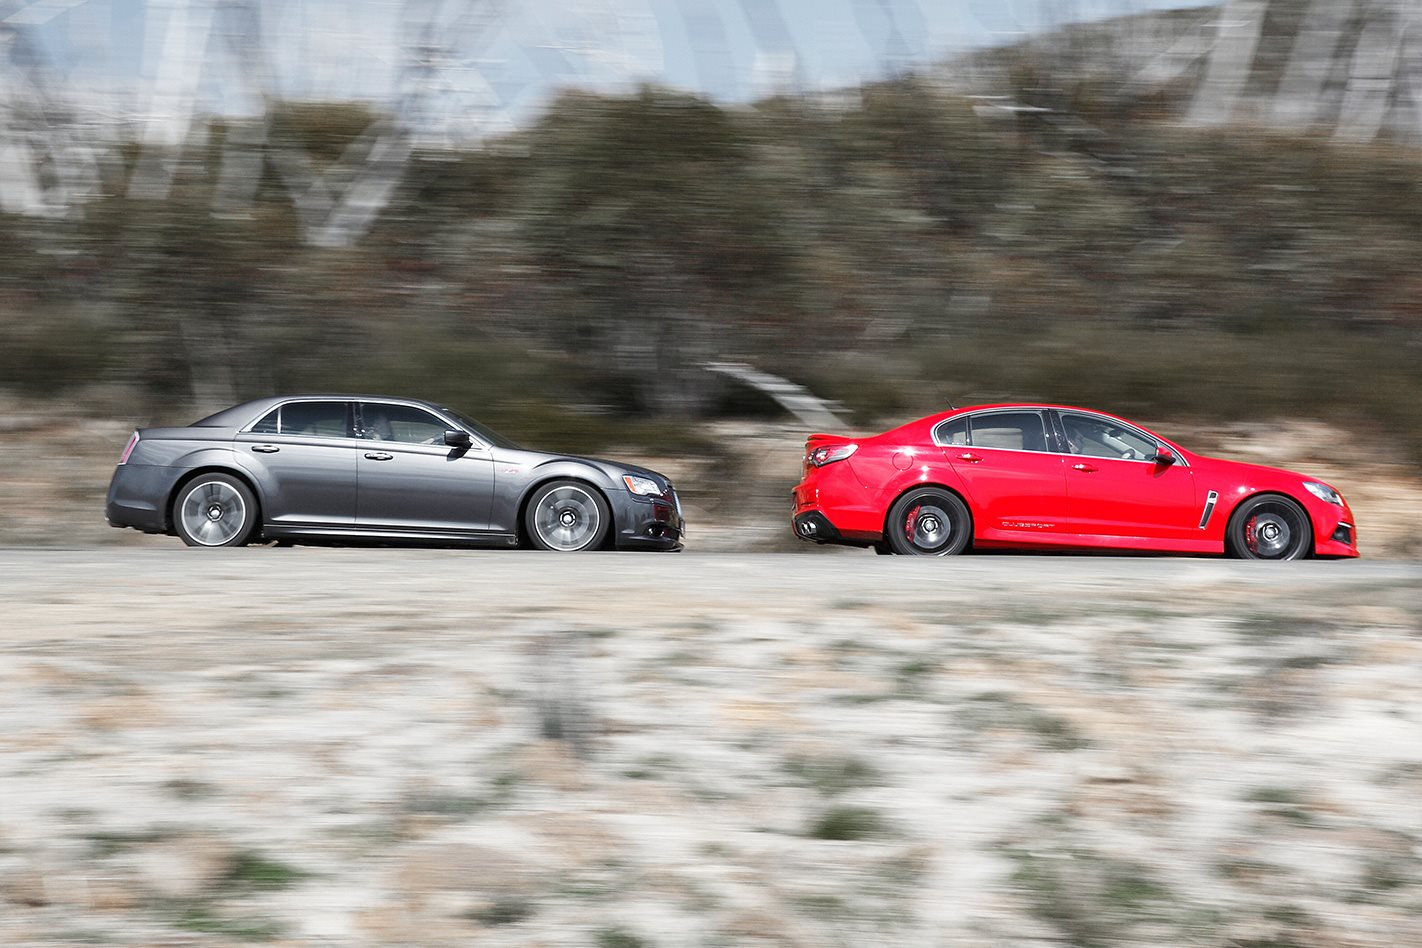 HSV Clubsport vs Chrysler 300 SRT8 Core testing